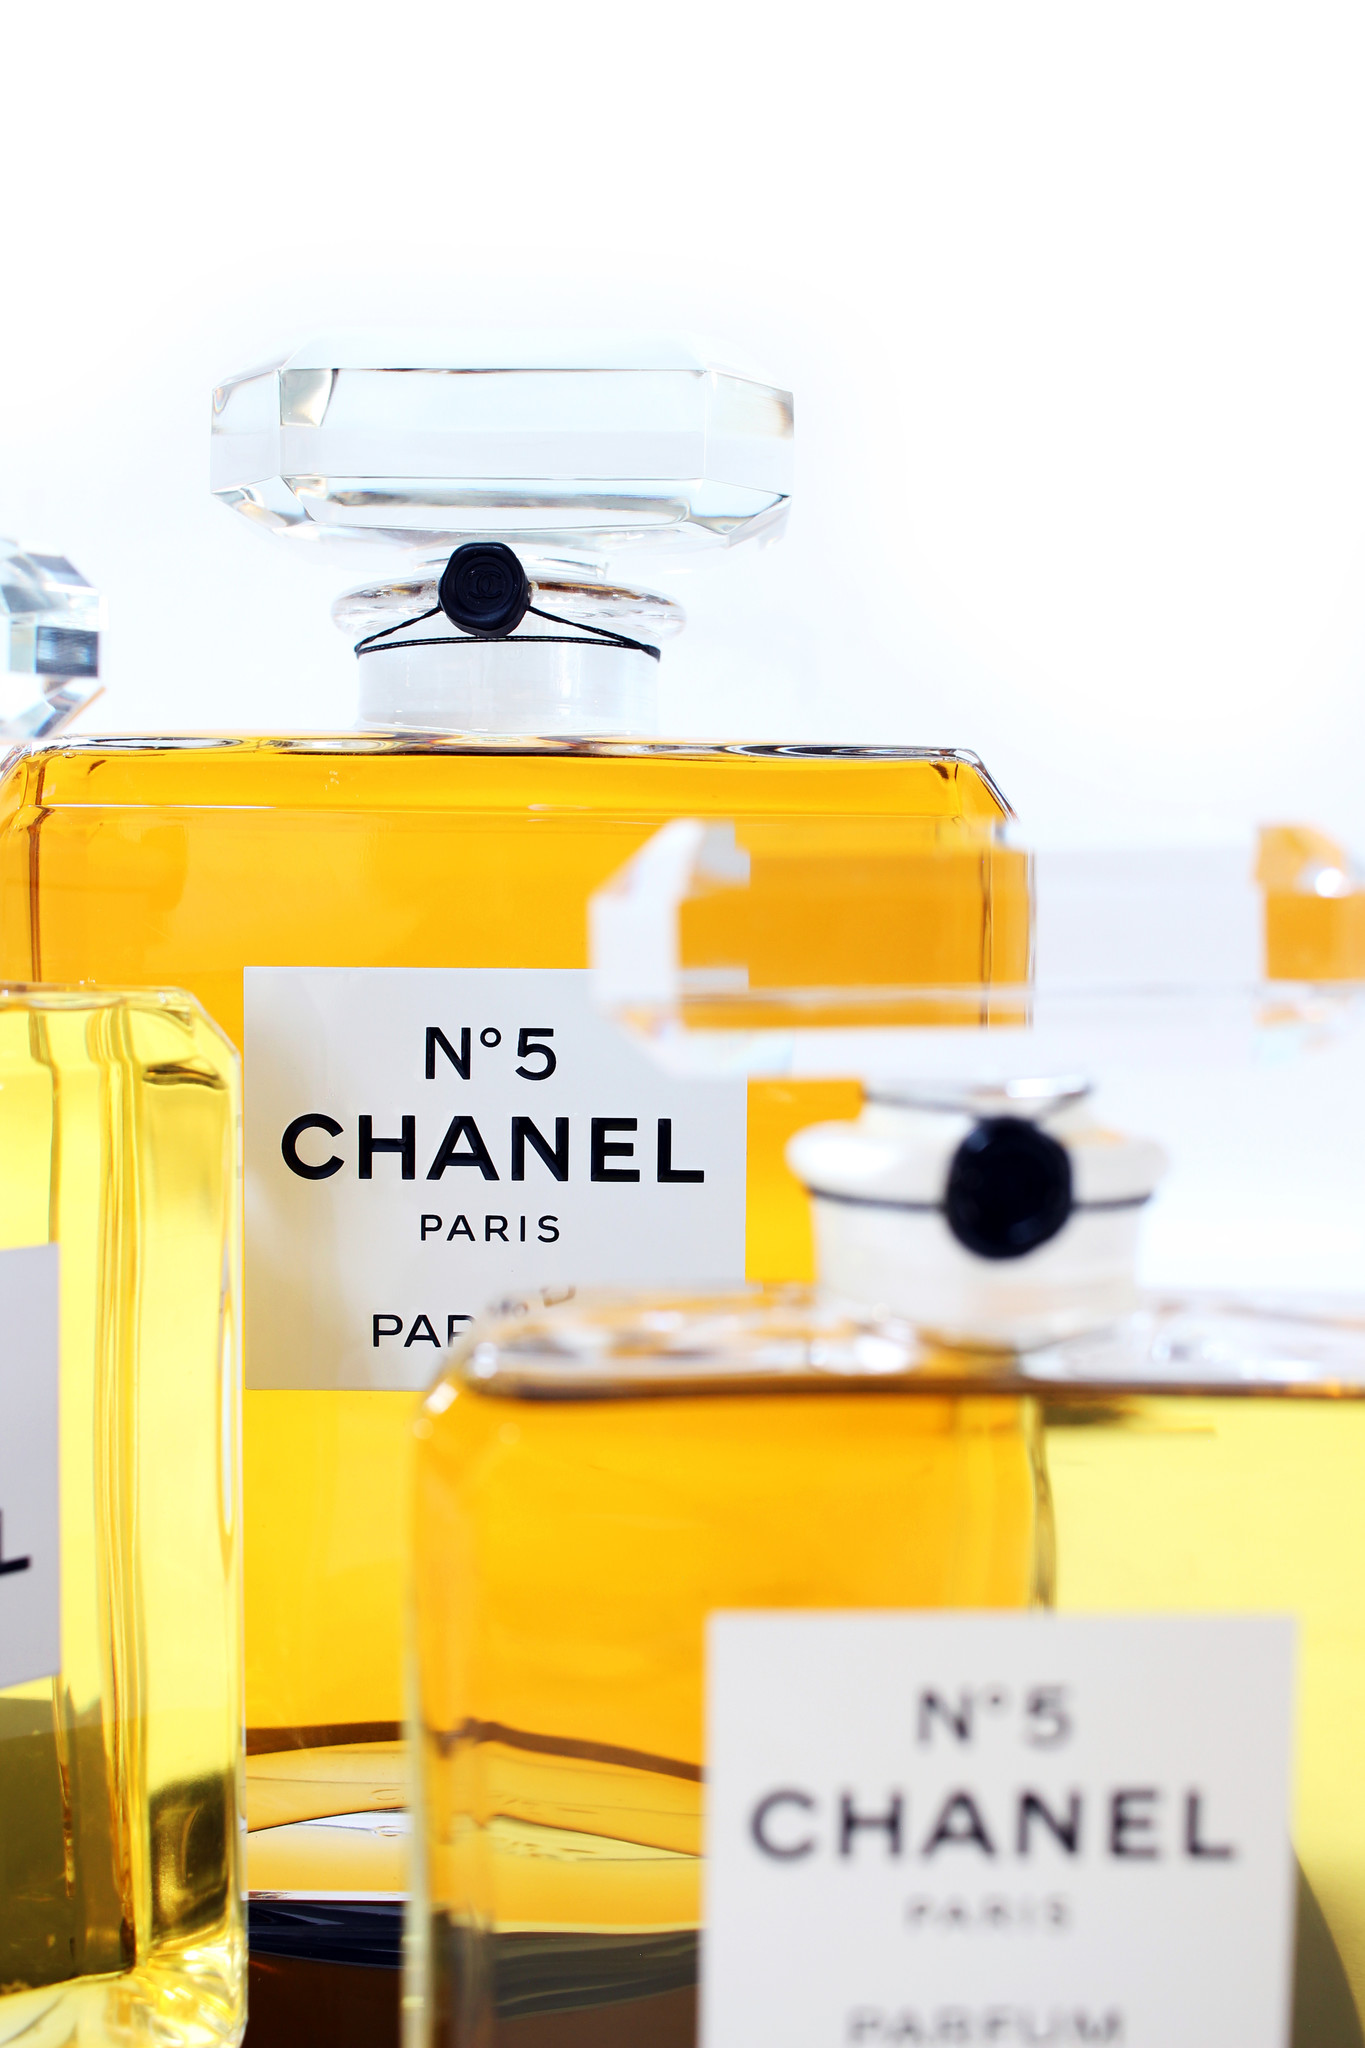 Large Chanel perfume bottles in display case